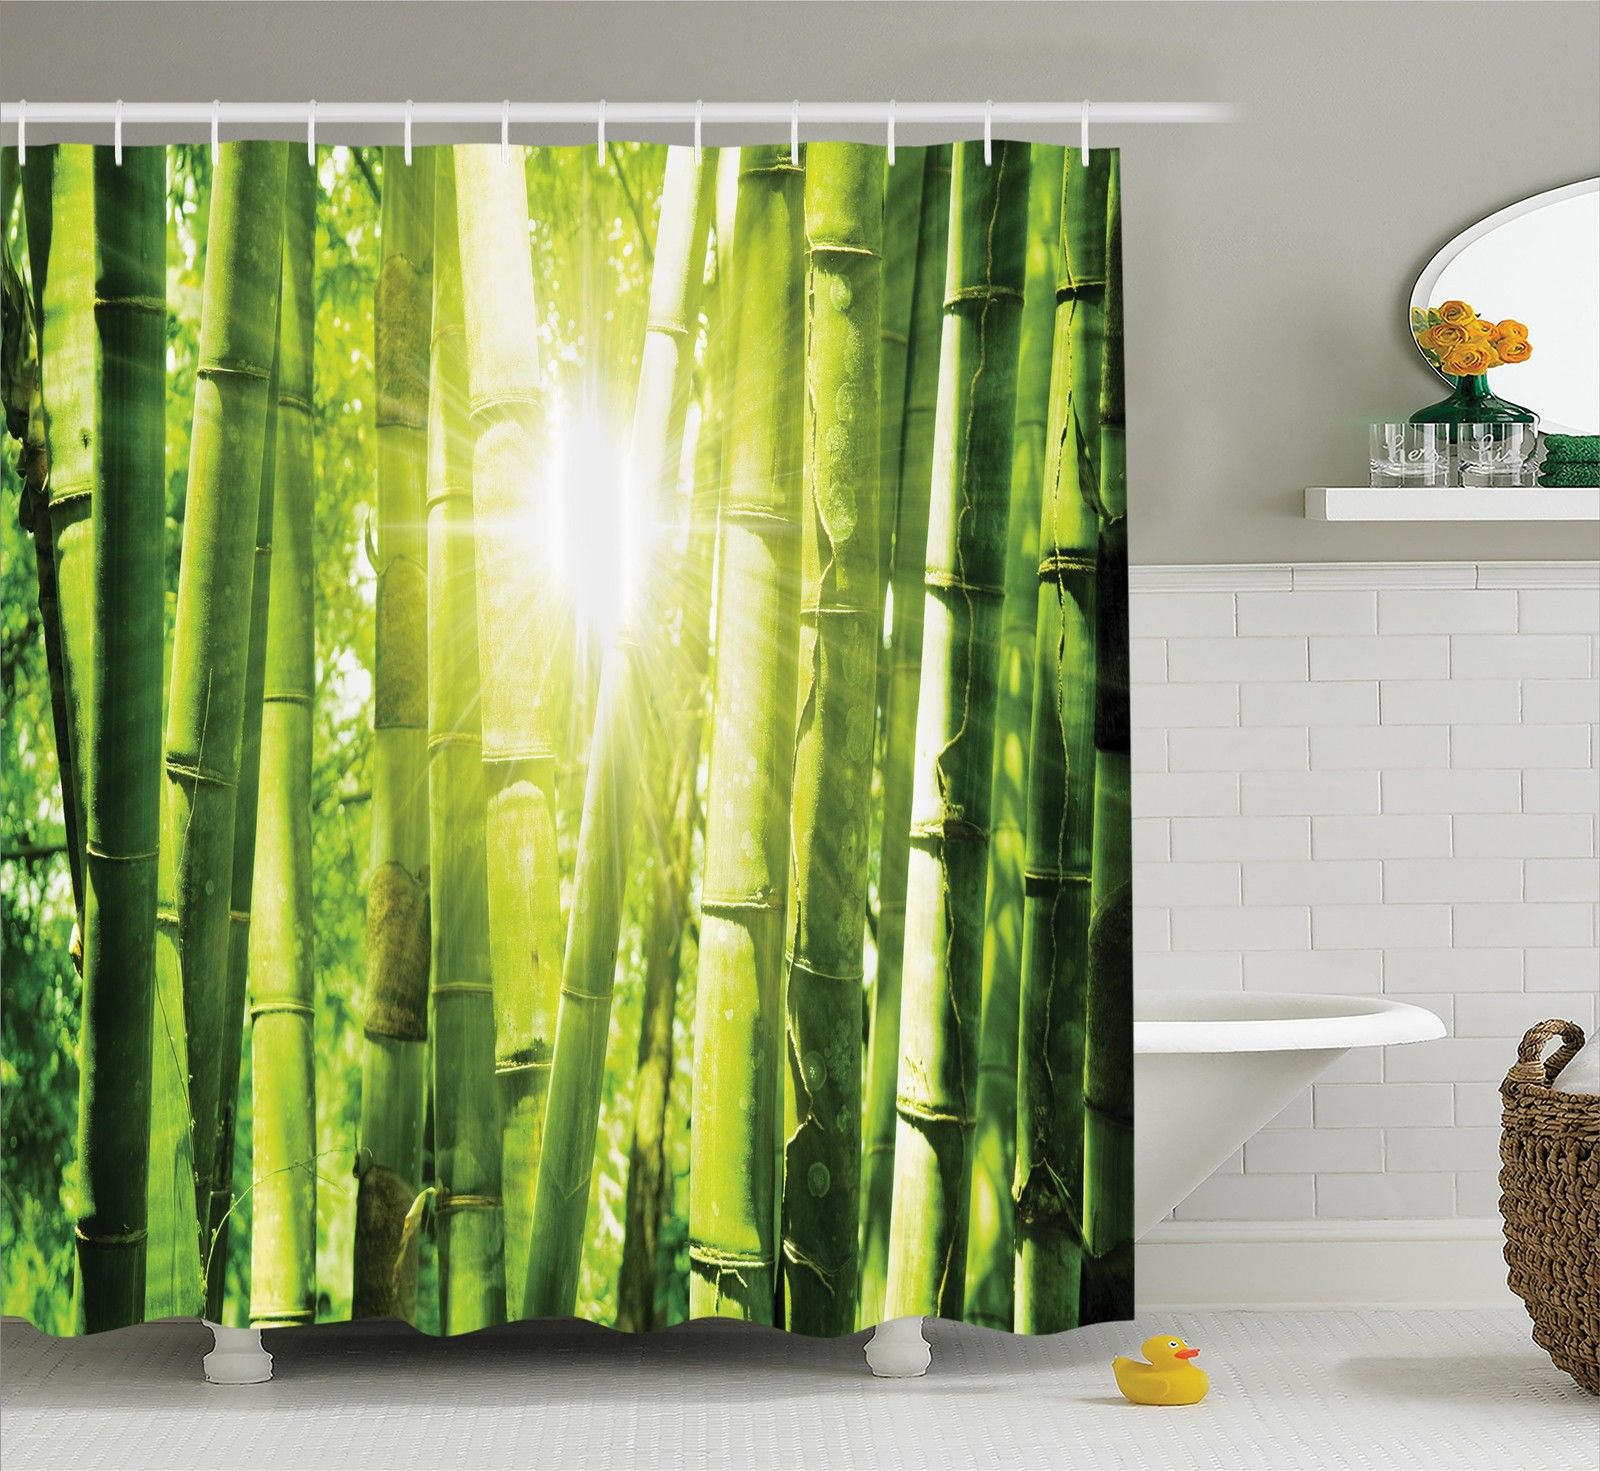 Asian Decor Shower Curtain Set, Asian Bamboo Forest With Morning Sunlight Sun Shining Through Trees Jungle Scene, Bathroom Accessories, 69W X 70L Inches, By Ambesonne